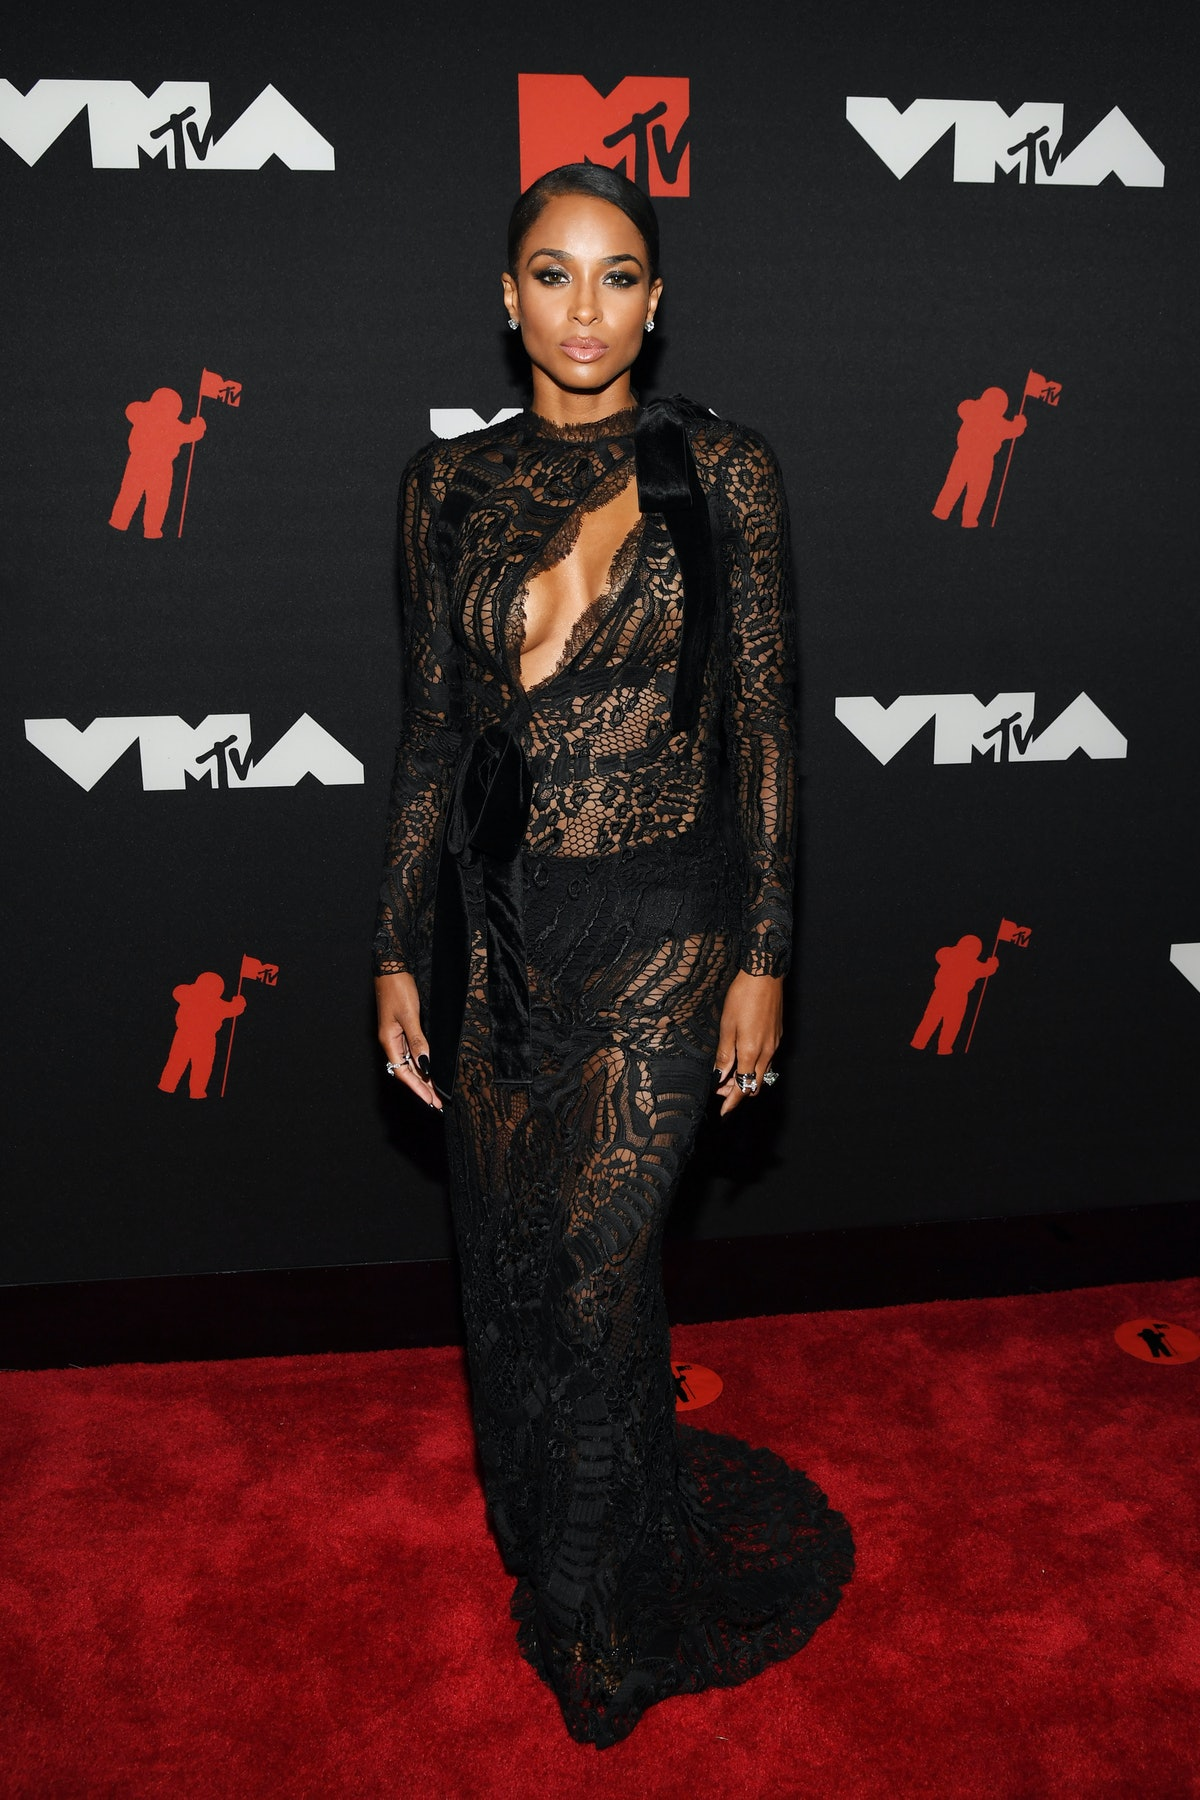 Ciara attends the 2021 MTV Video Music Awards at Barclays Center on September 12, 2021 in the Brookl...